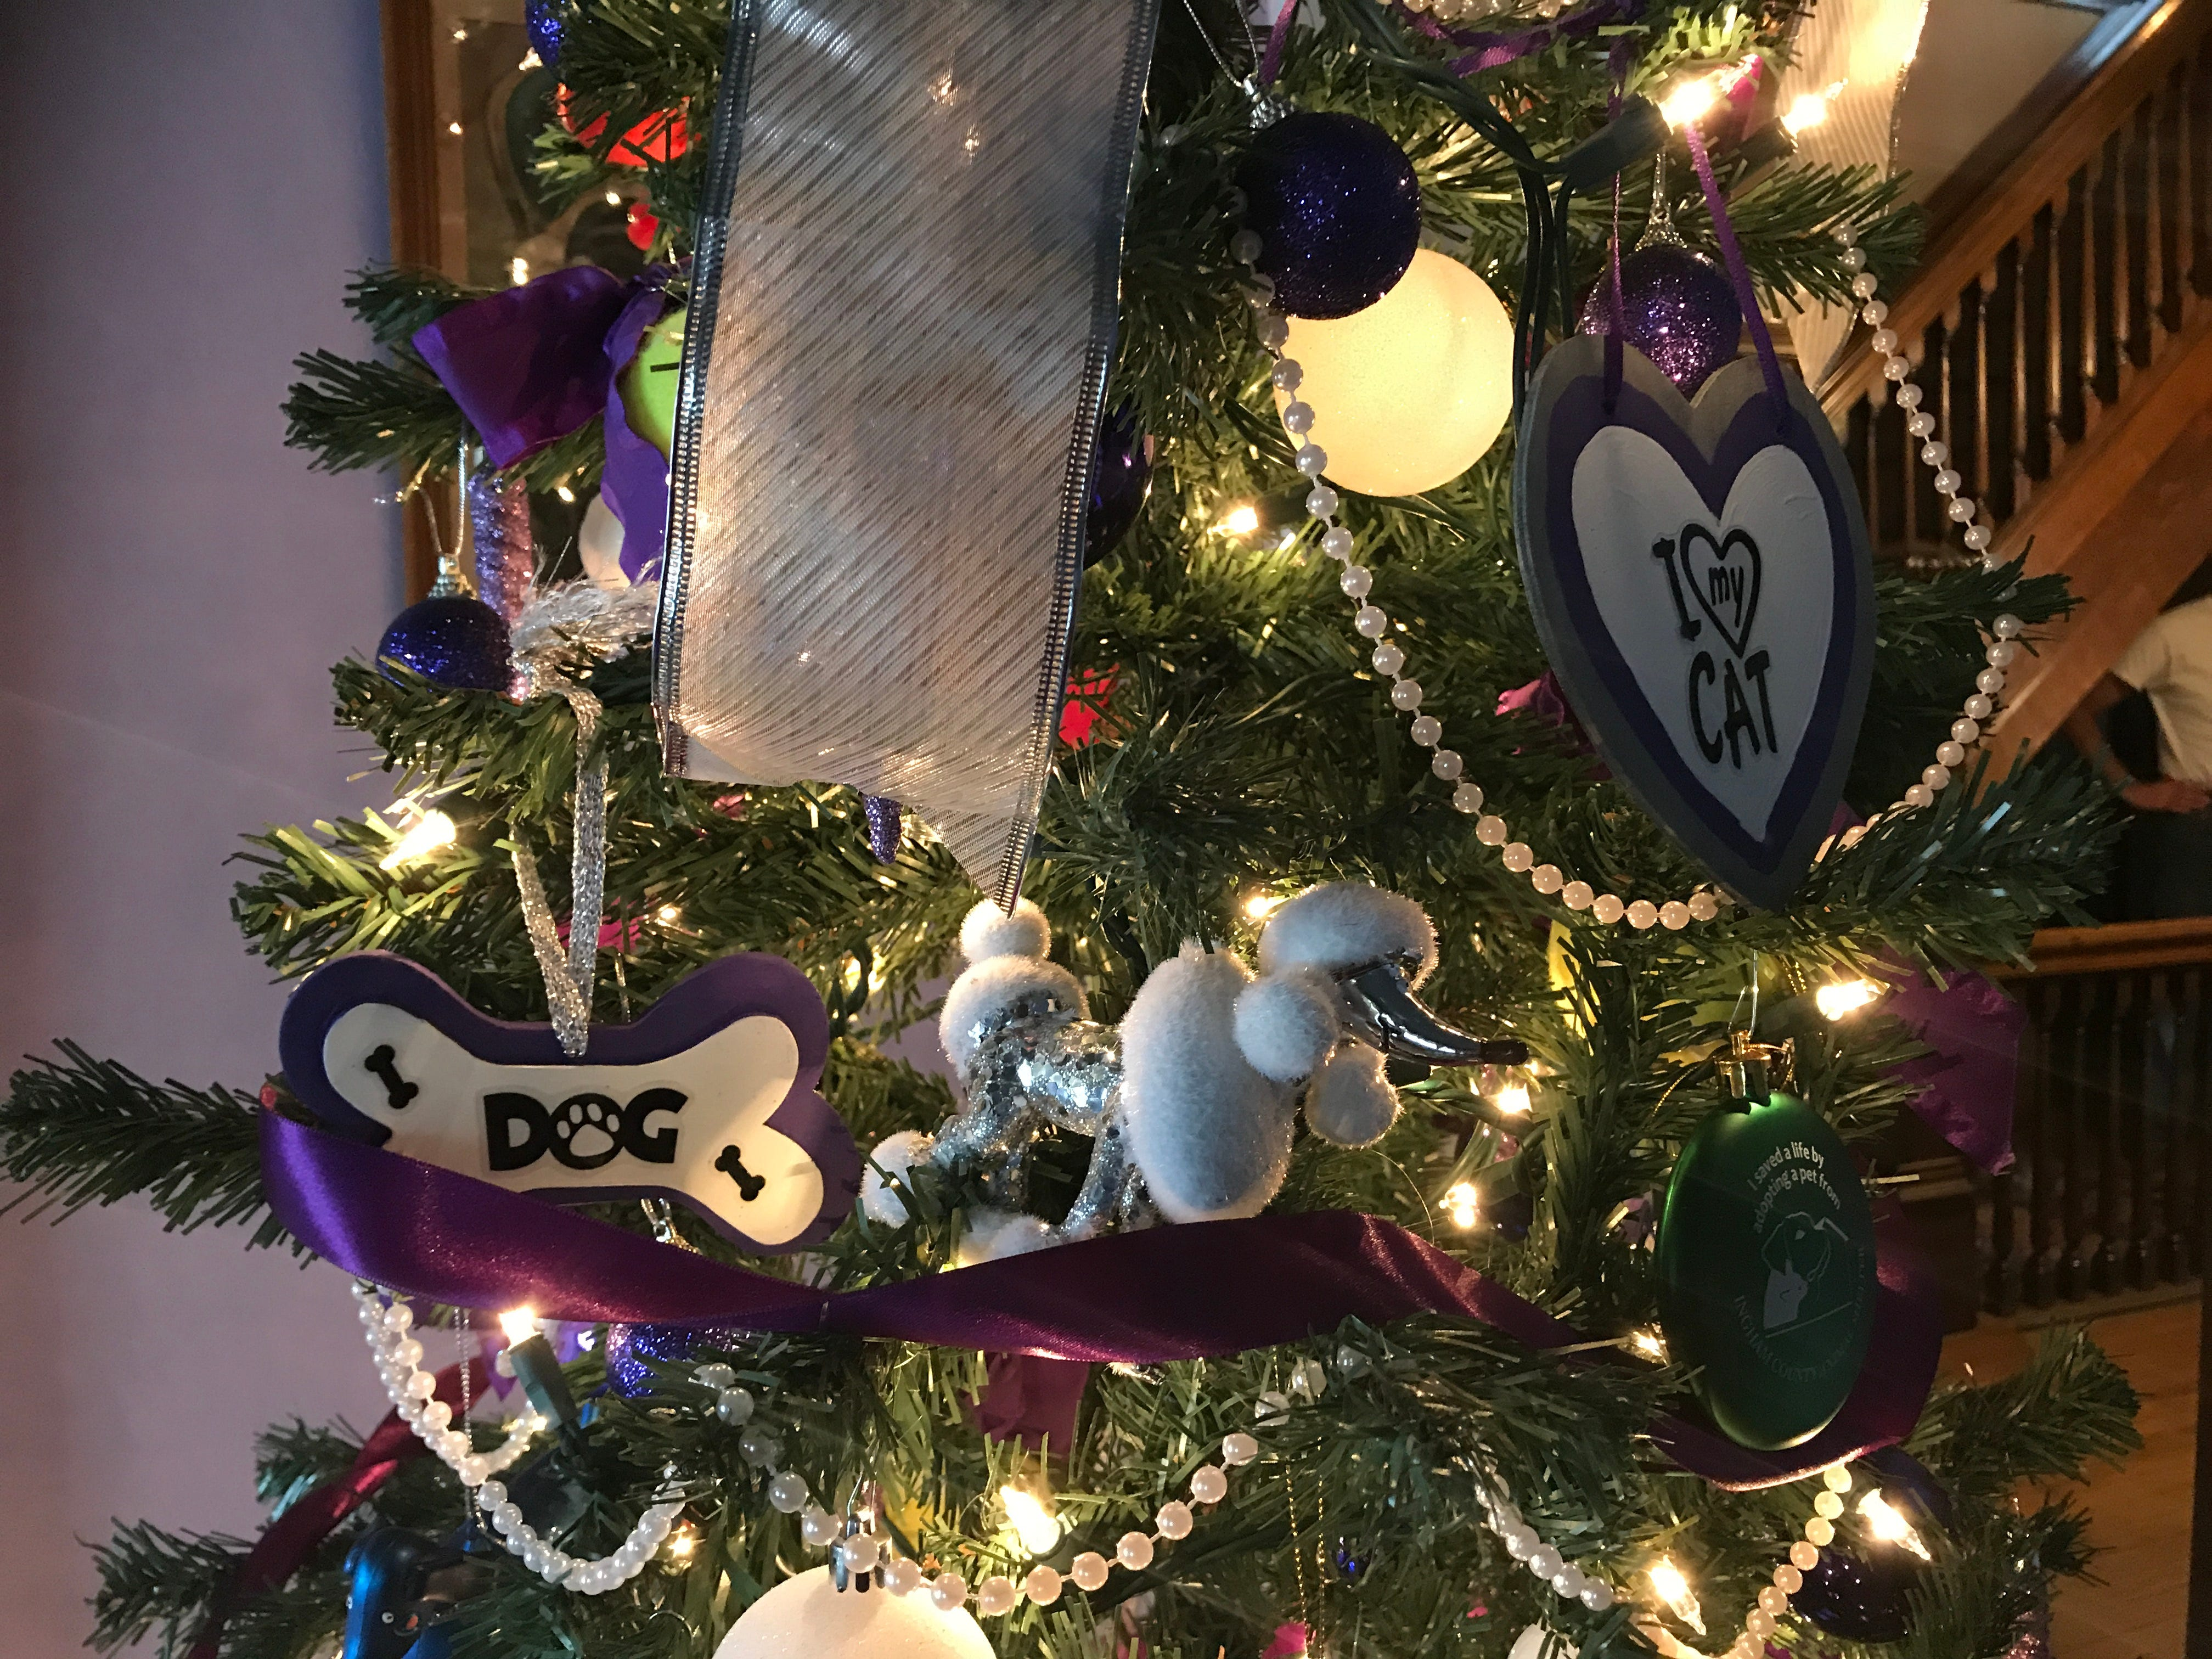 A silver and white poodle ornament on a Paws for Fun Christmas tree.